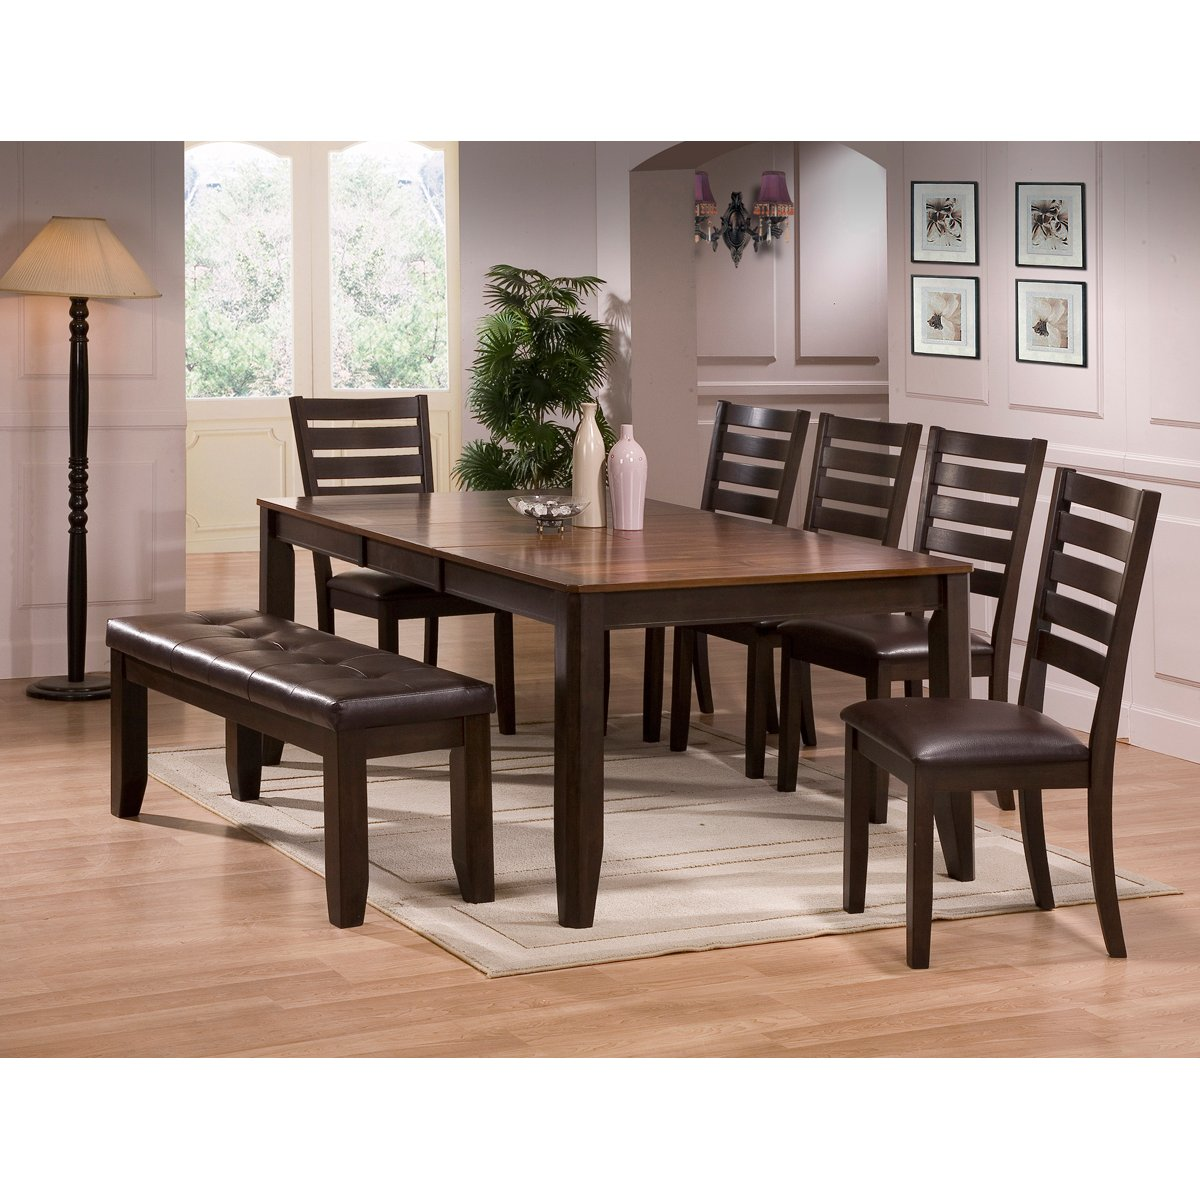 kitchen dp set piece east west com w amazon oak furniture sets dining table